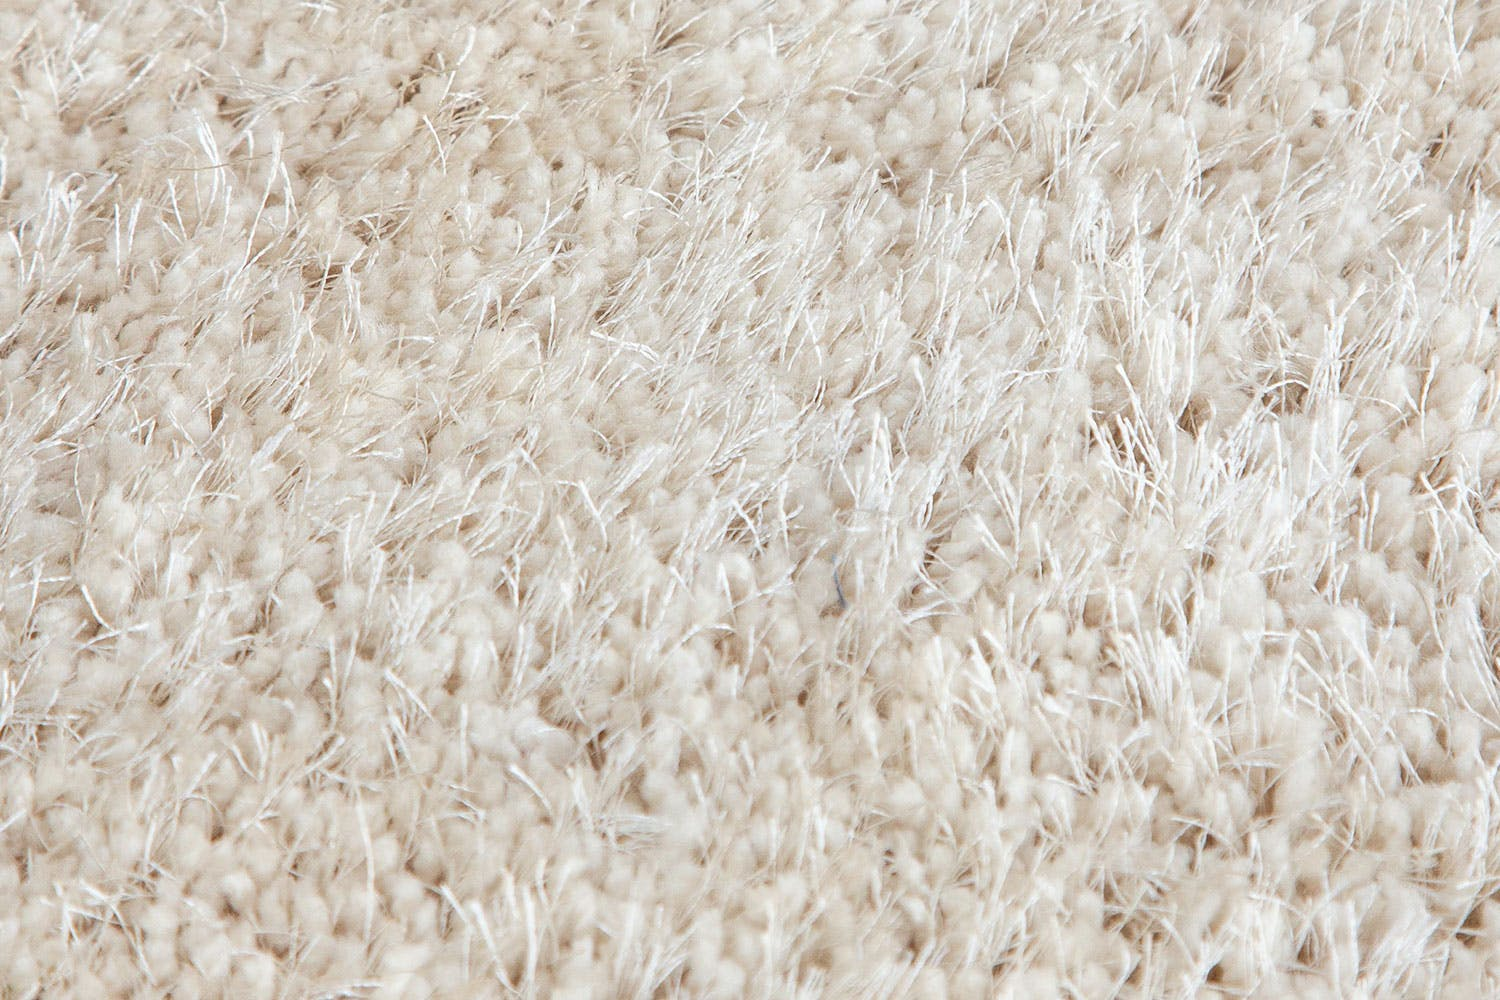 Montreal White Swan Rug by Signature Rugs